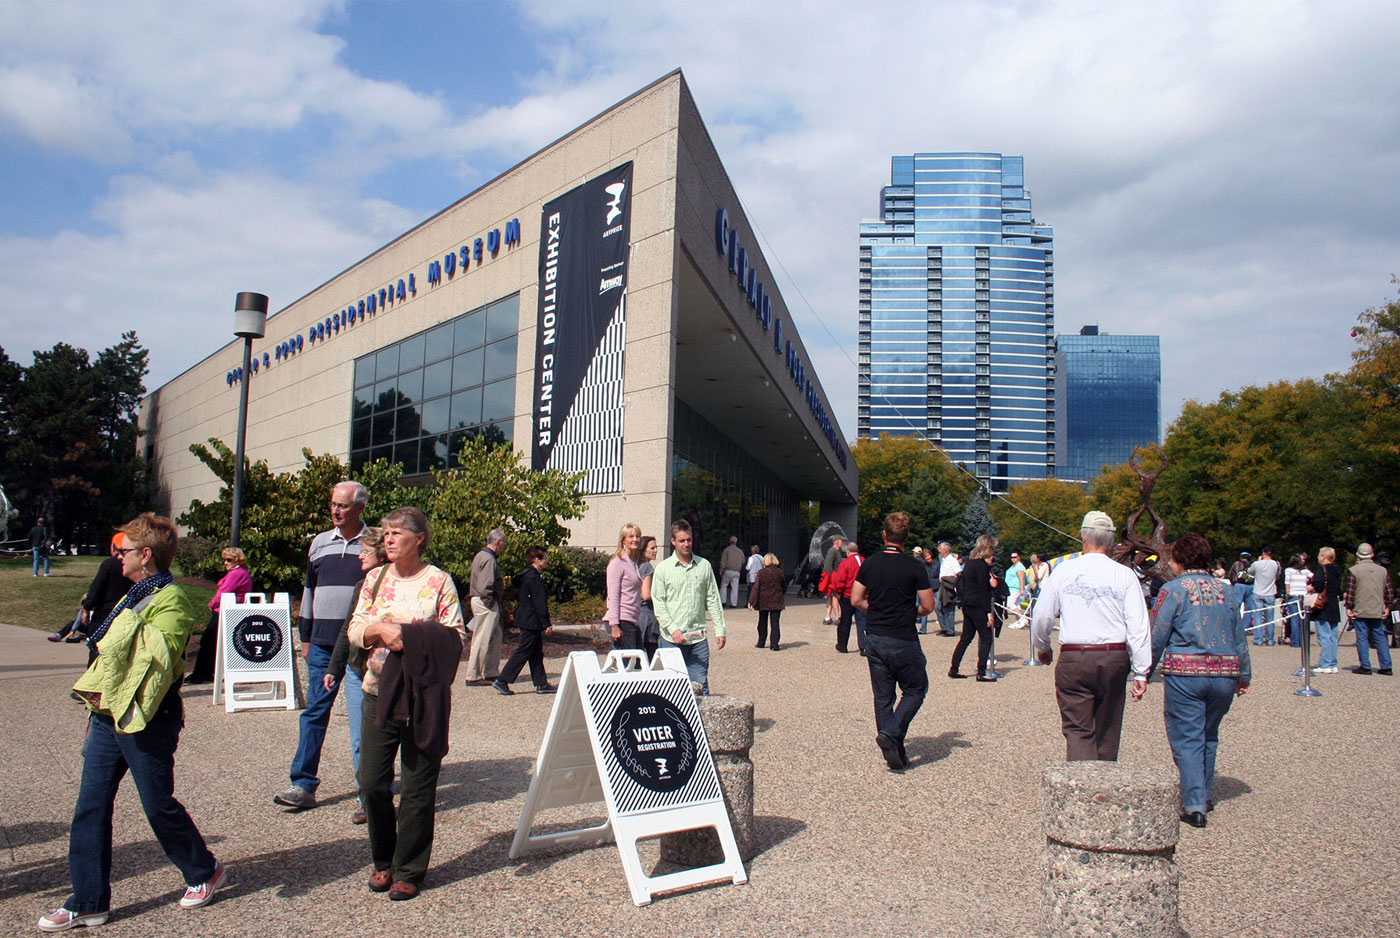 ArtPrize 2012 Exterior Signage Banner at Gerald R. Ford Museium